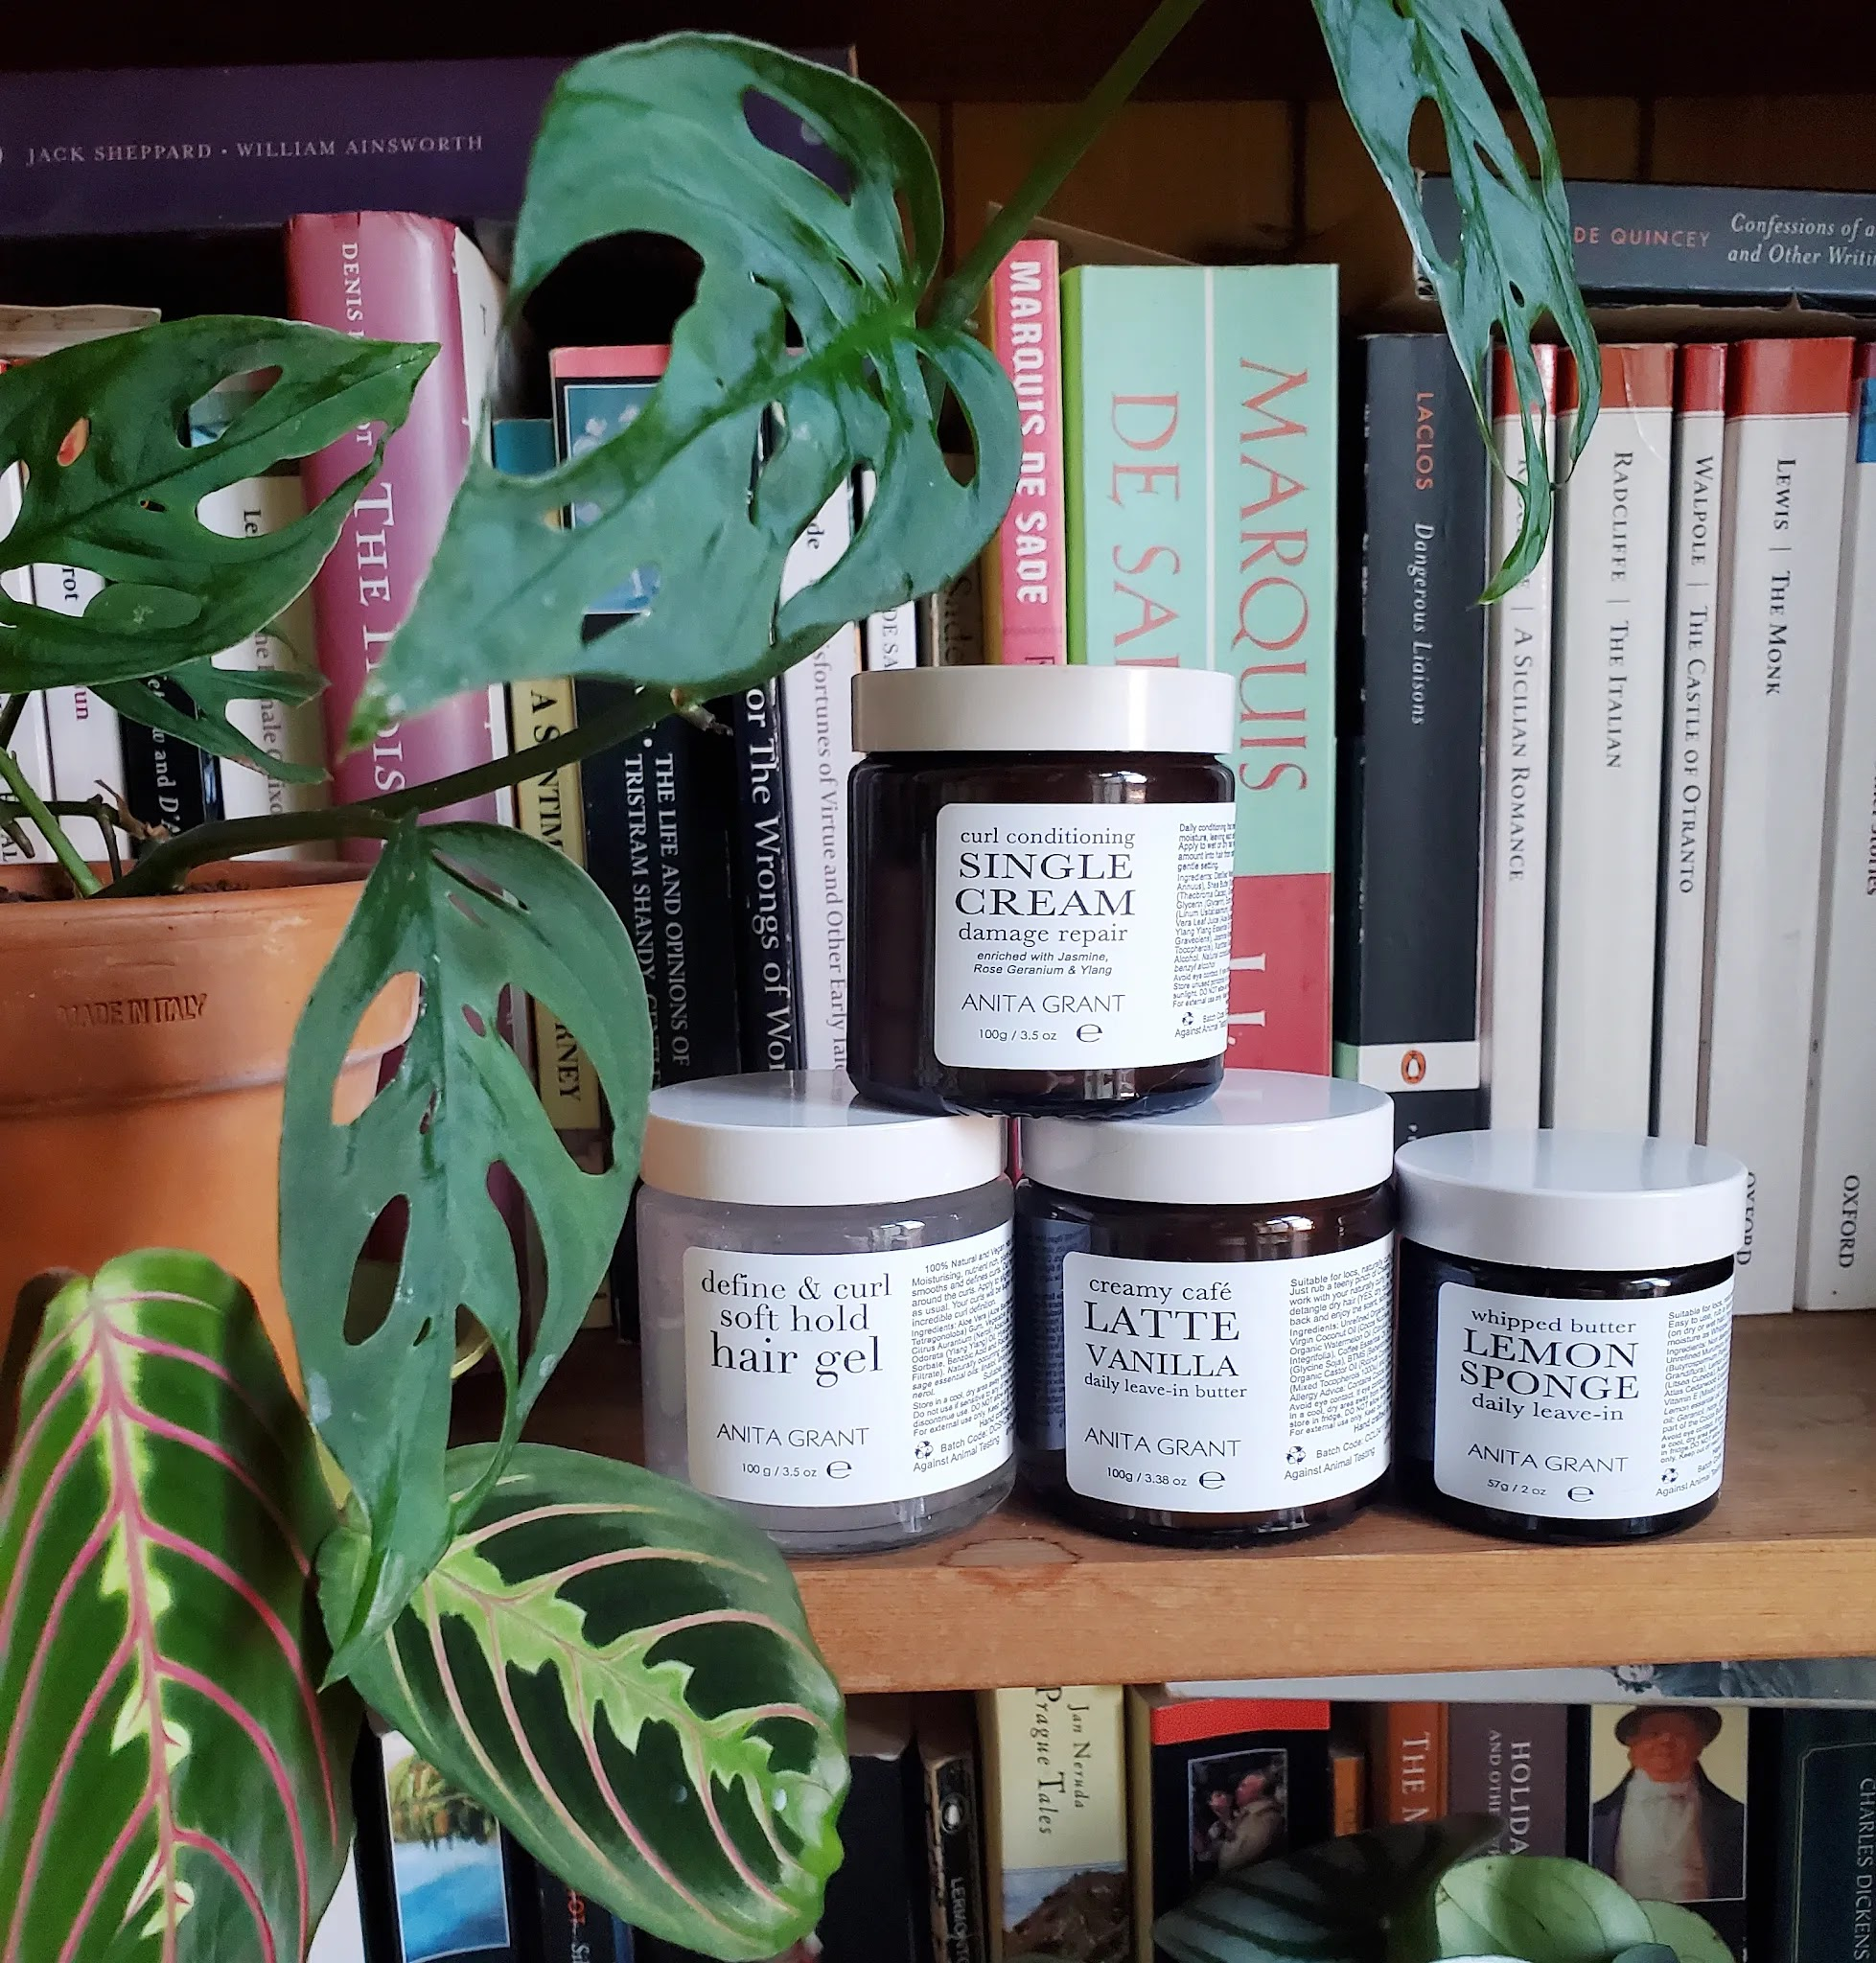 four Anita Grant natural haircare products stacked together on a bookshelf surrounded by leafy plants